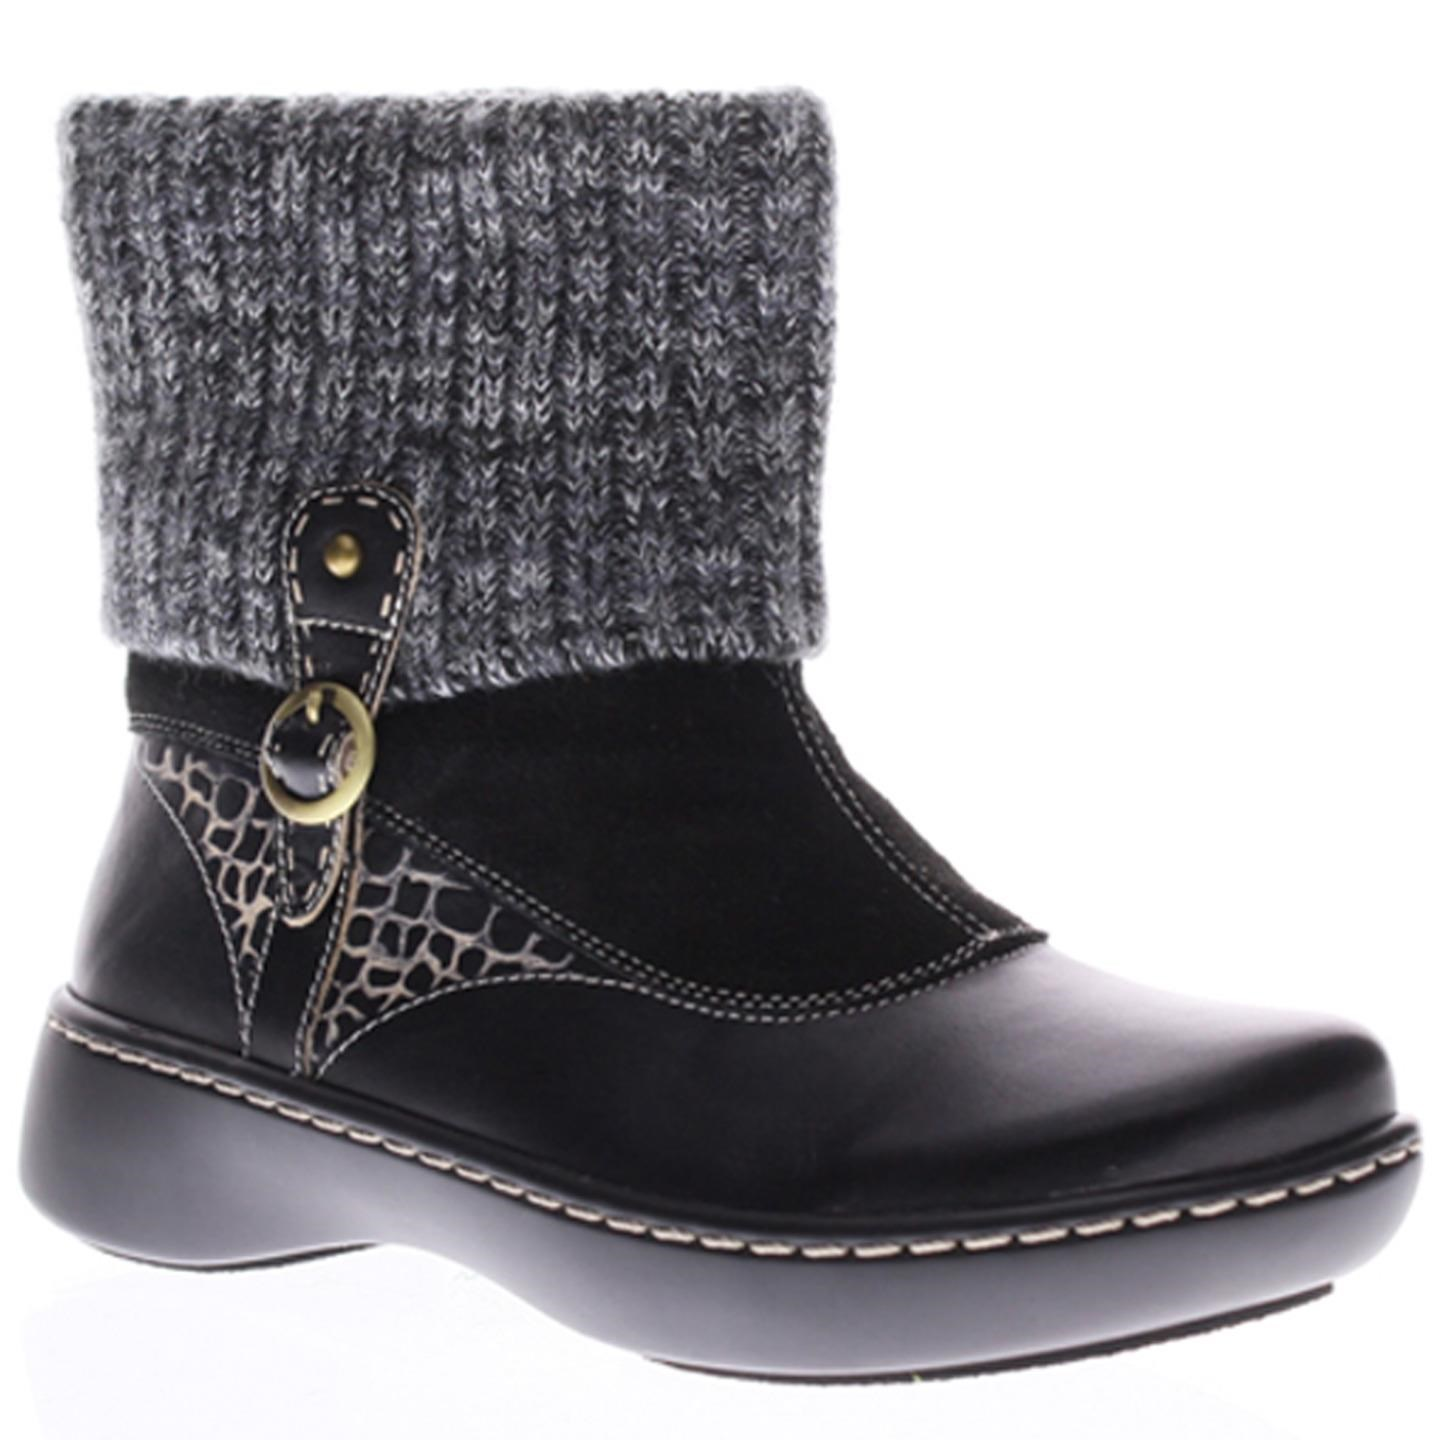 L'Artiste by Spring Step Womens Leather Boots Ontario Black Suede 37 US 7 by Spring Step